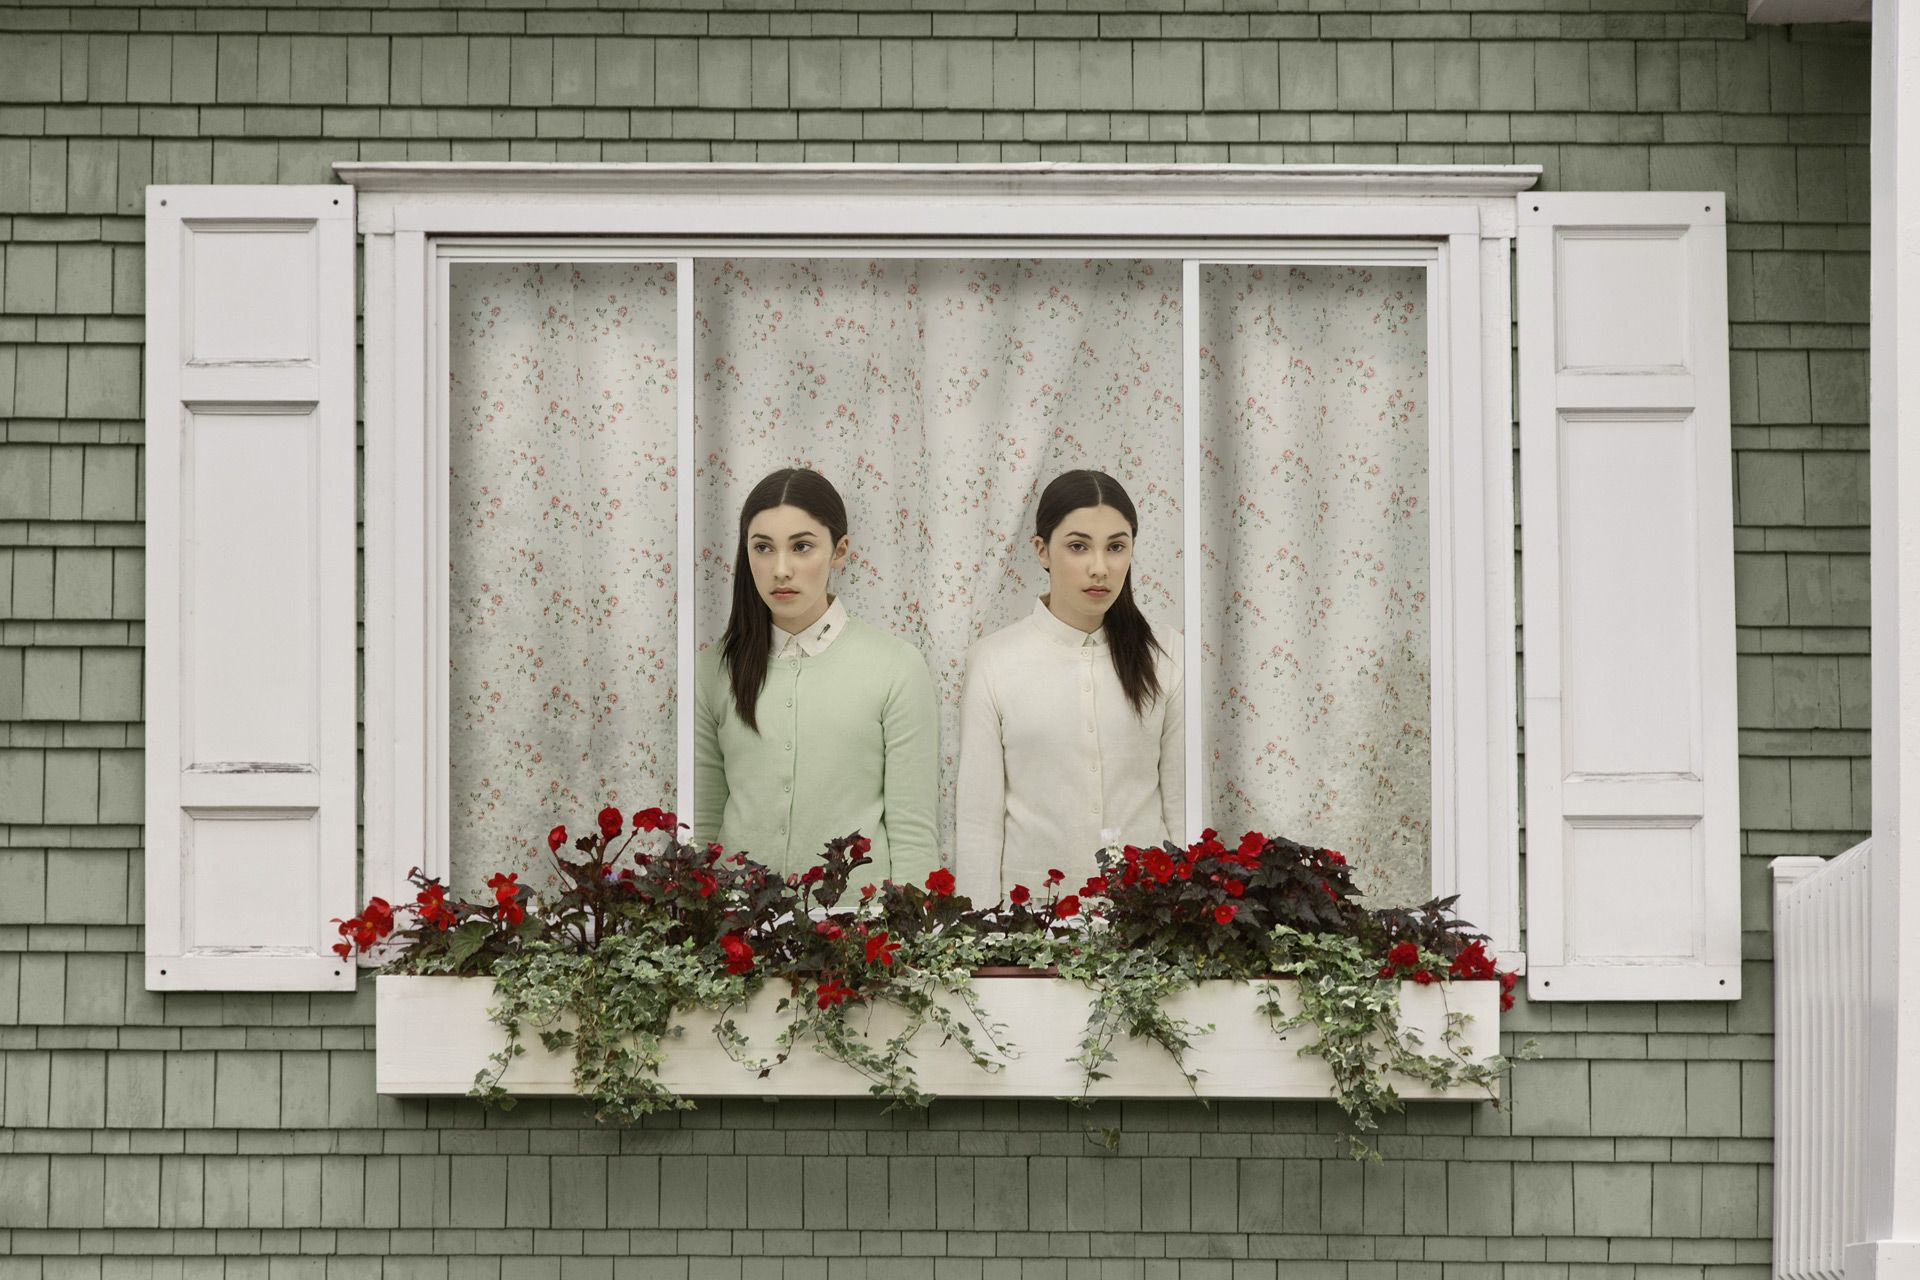 young set of twin girls one in light green one in white inside house looking sadly out the window in different directions by Simon Duhamel for In Between